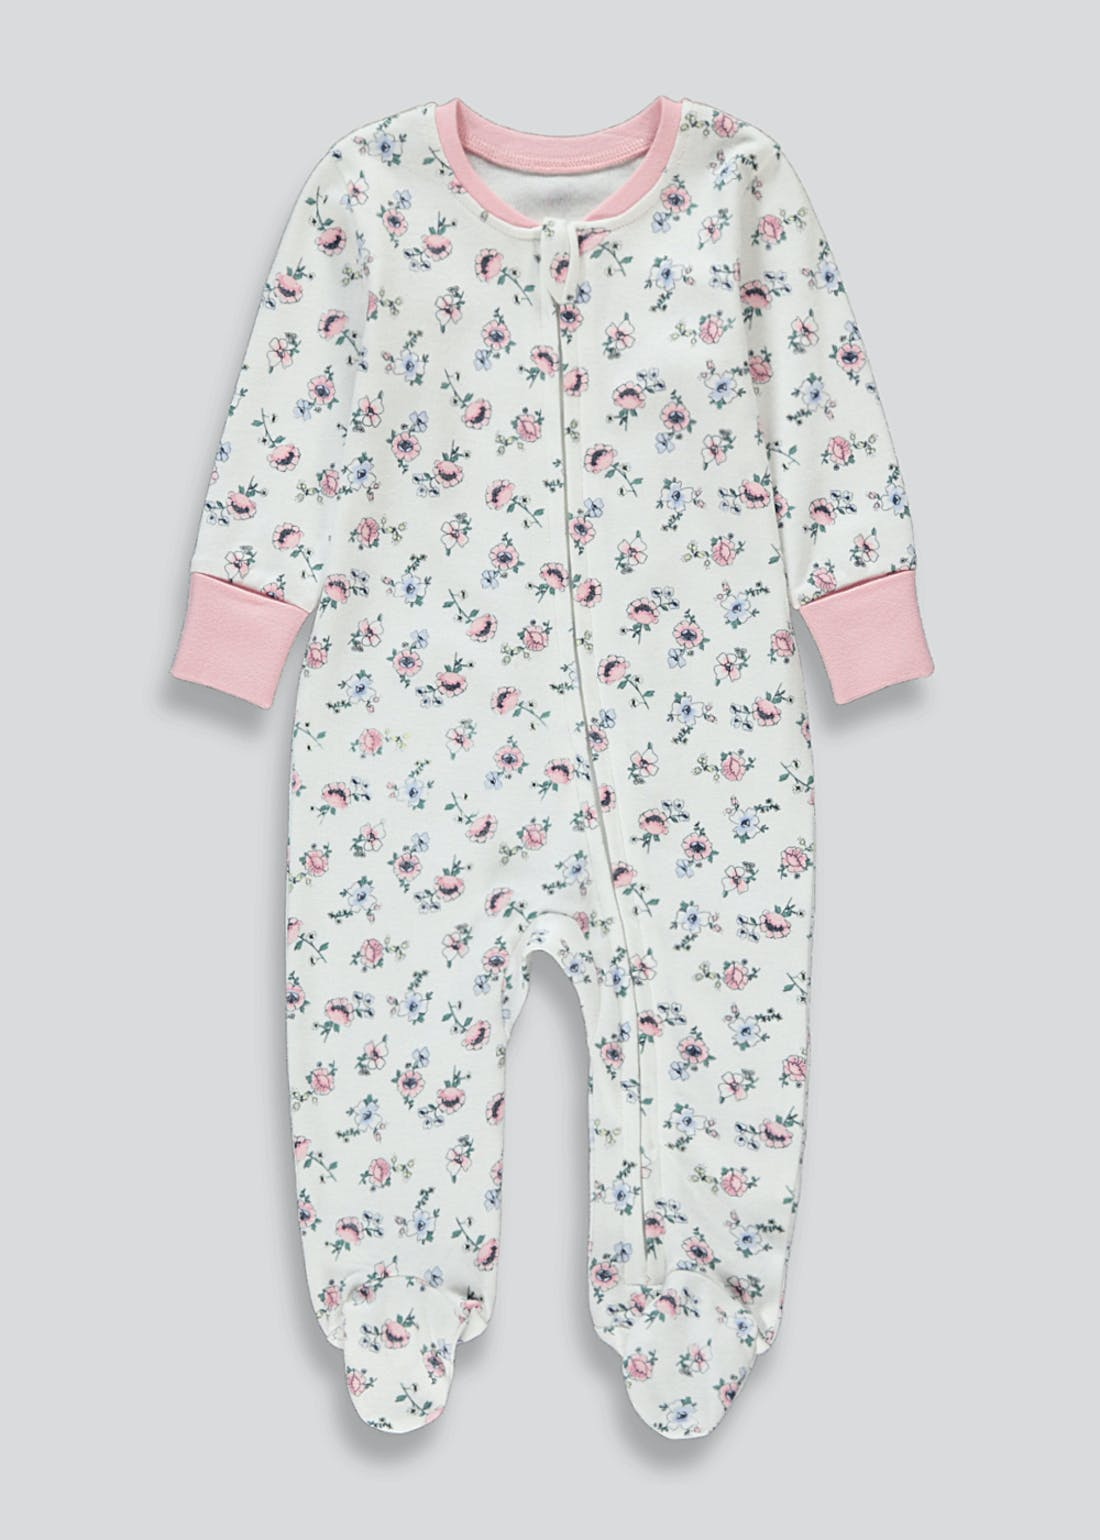 Girls Floral Zip Up Baby Grow (Tiny Baby-12mths)